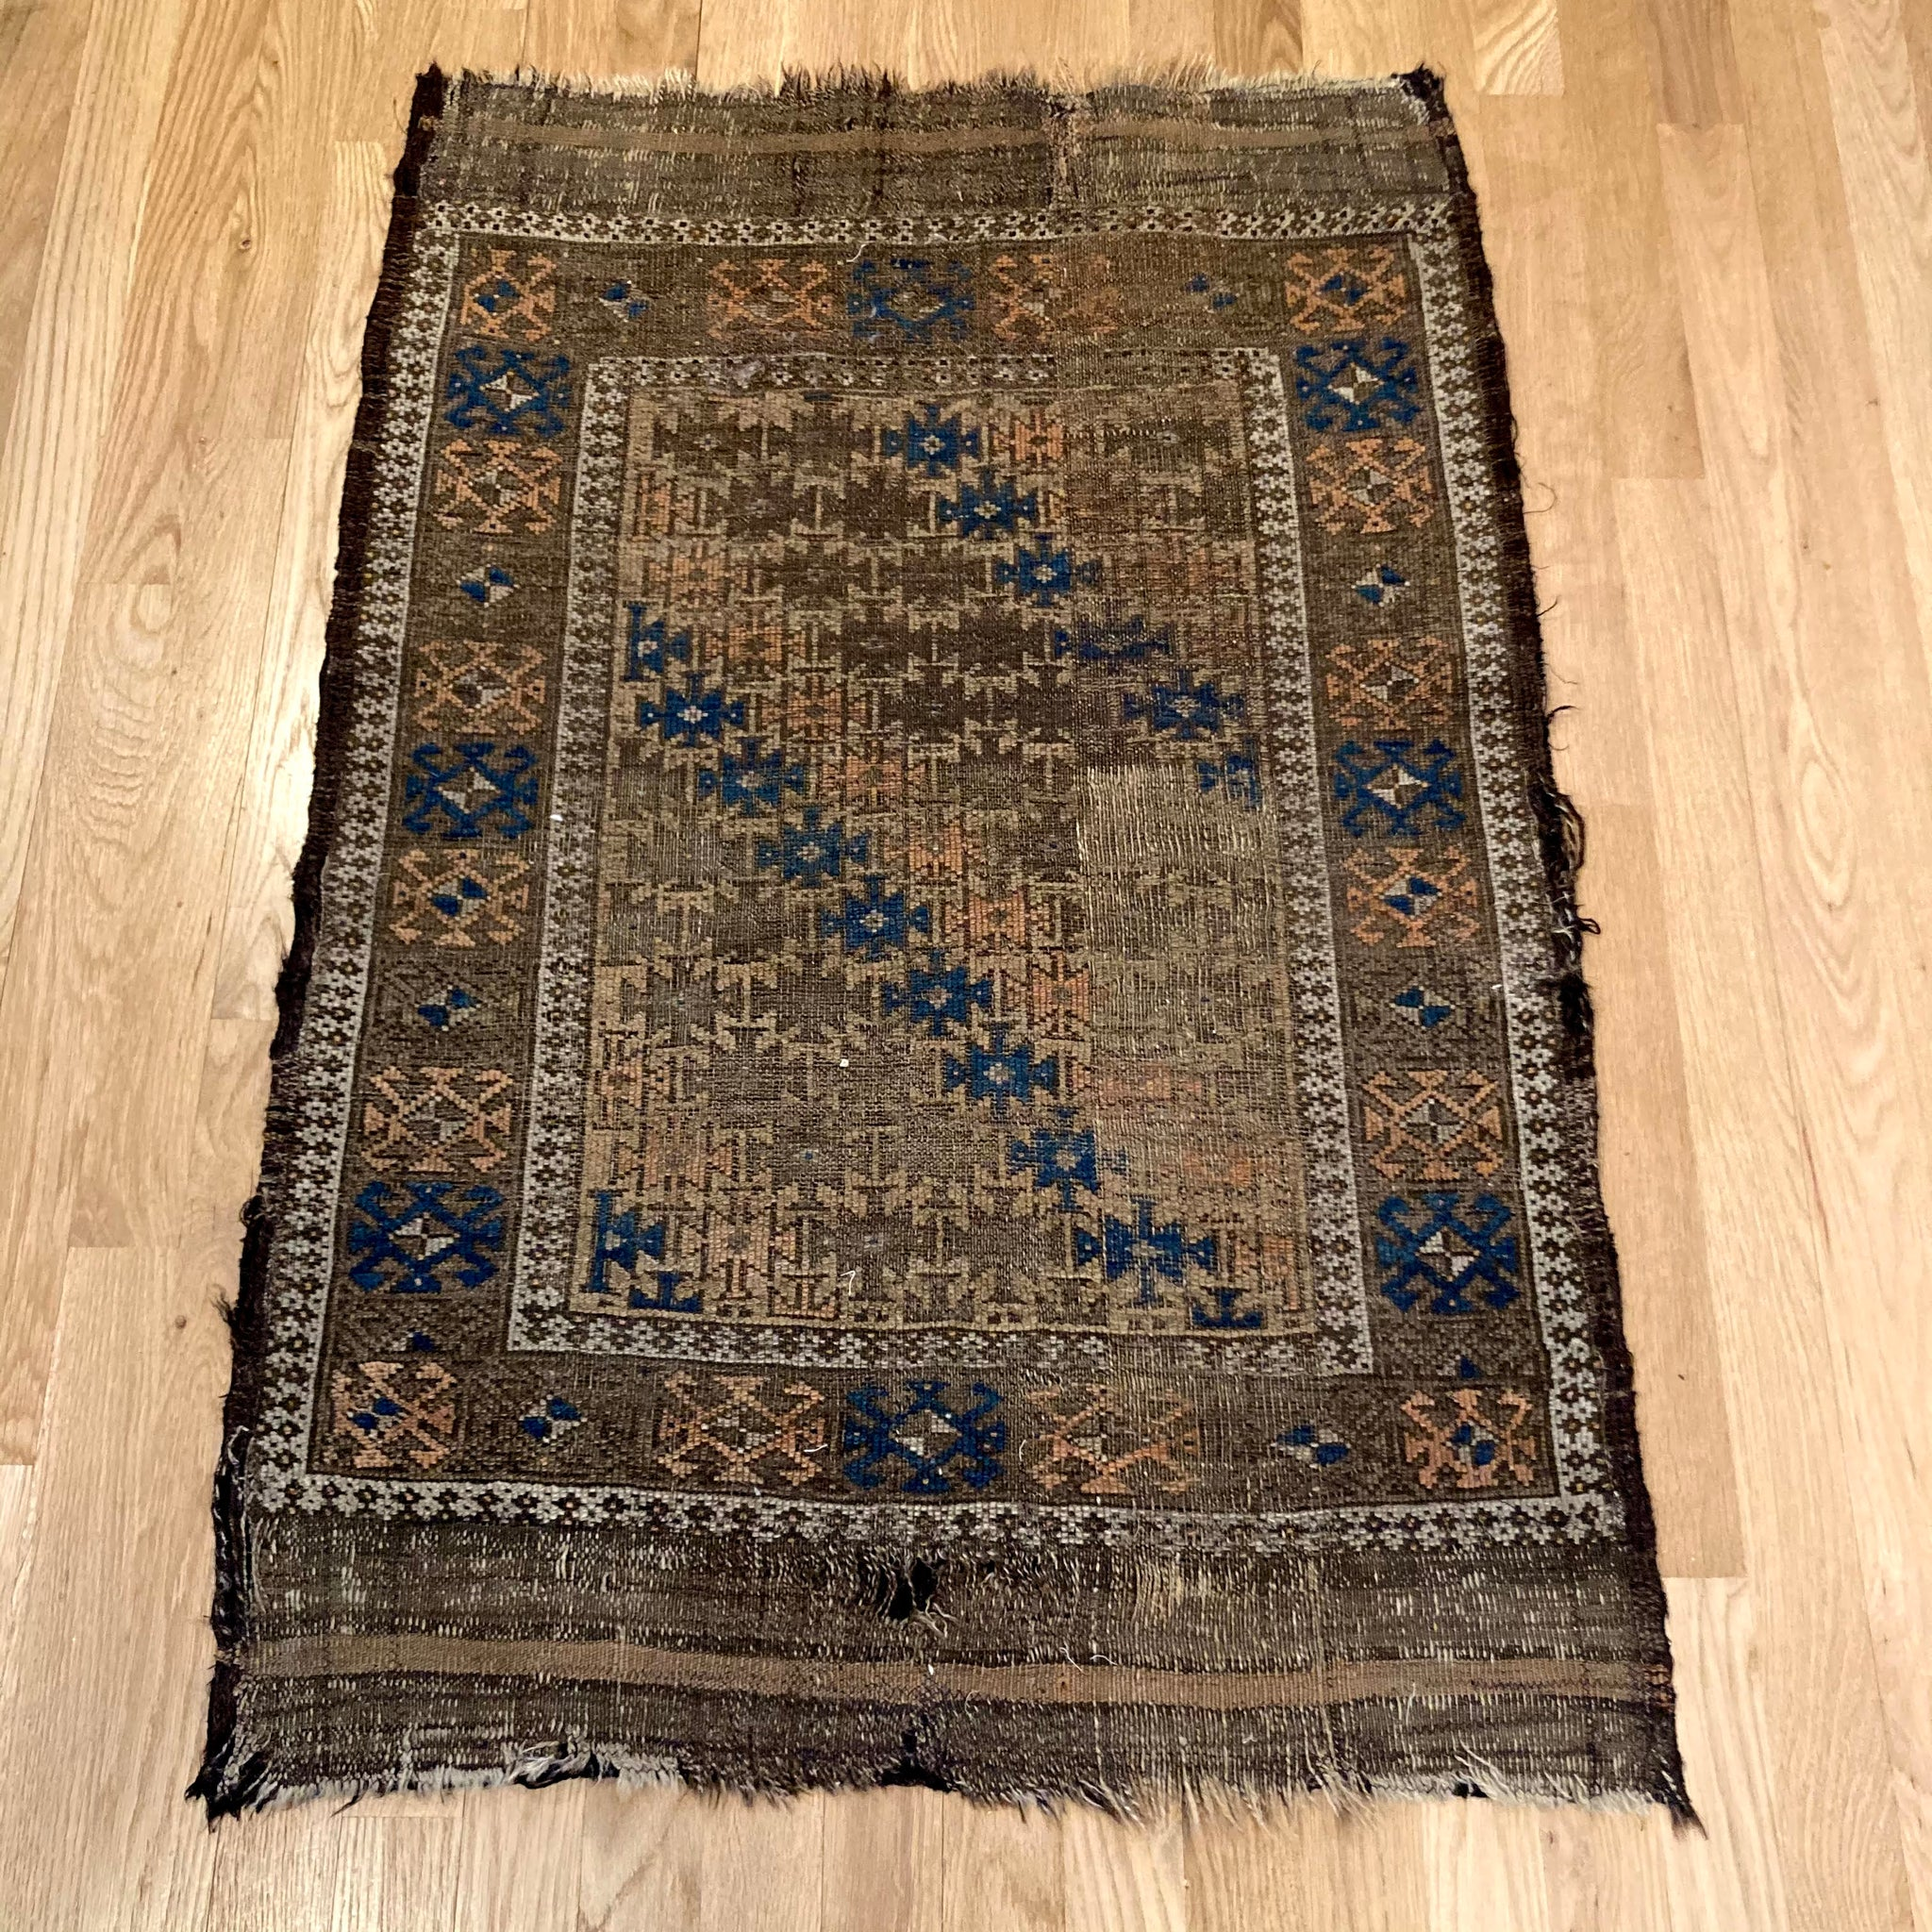 Antique Rug, 2' 4 x 3' 6 Tan